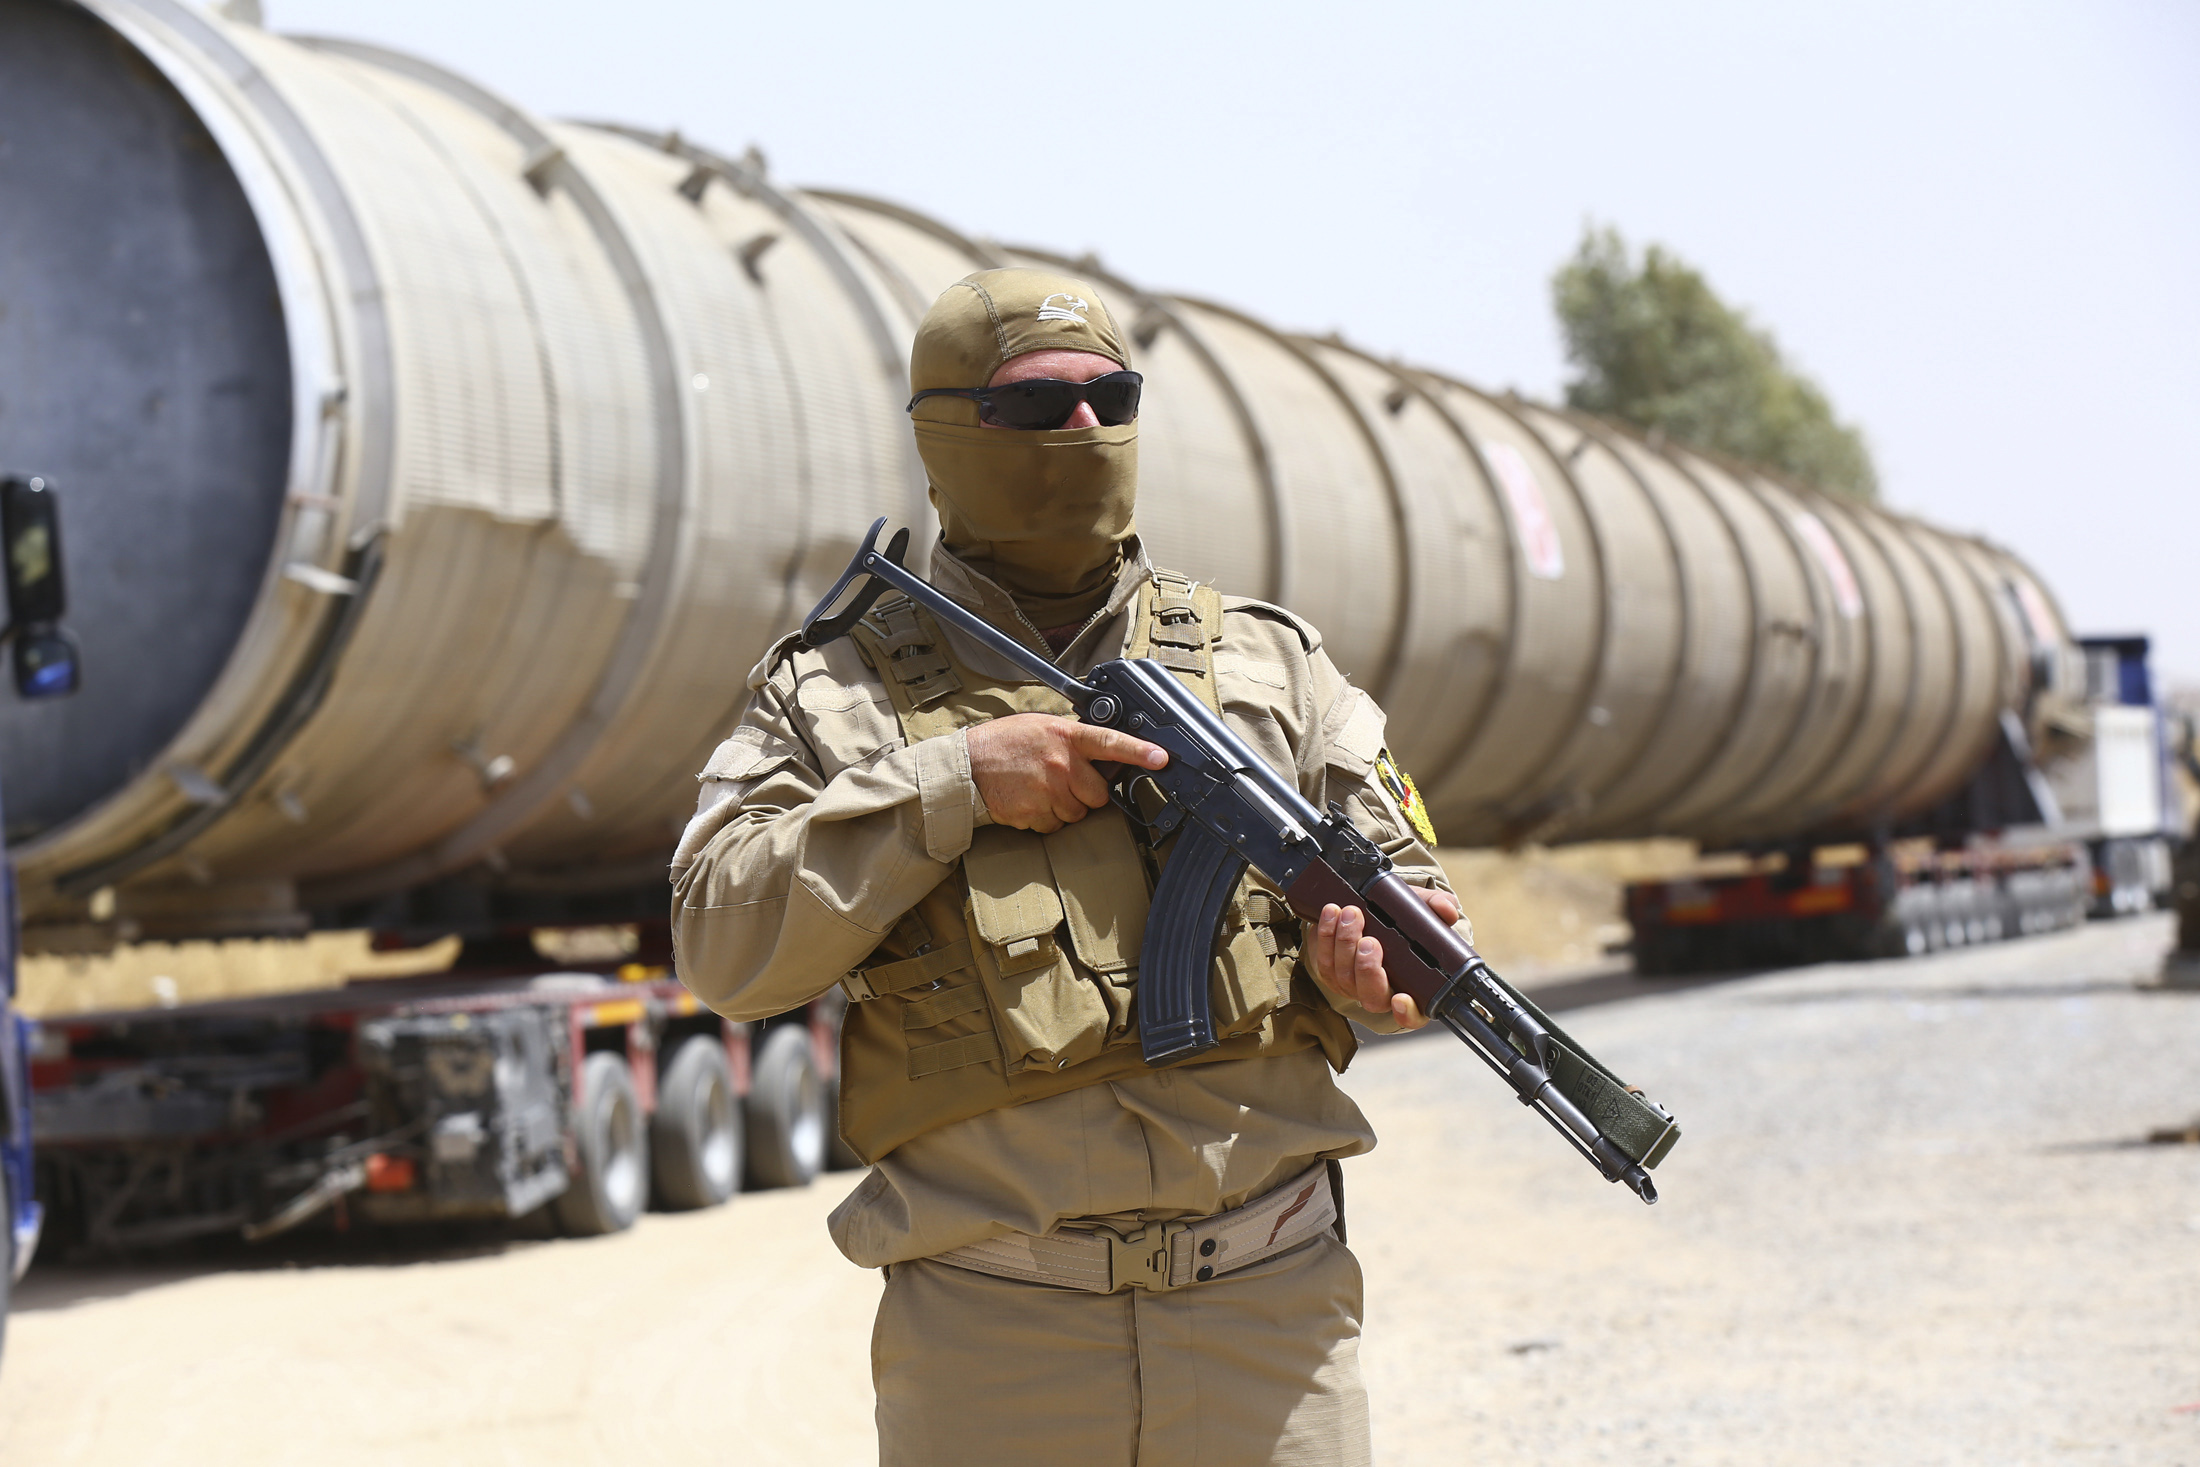 A member of the Kurdish security forces takes up position with his weapon as he guards a section of an oil refinery.